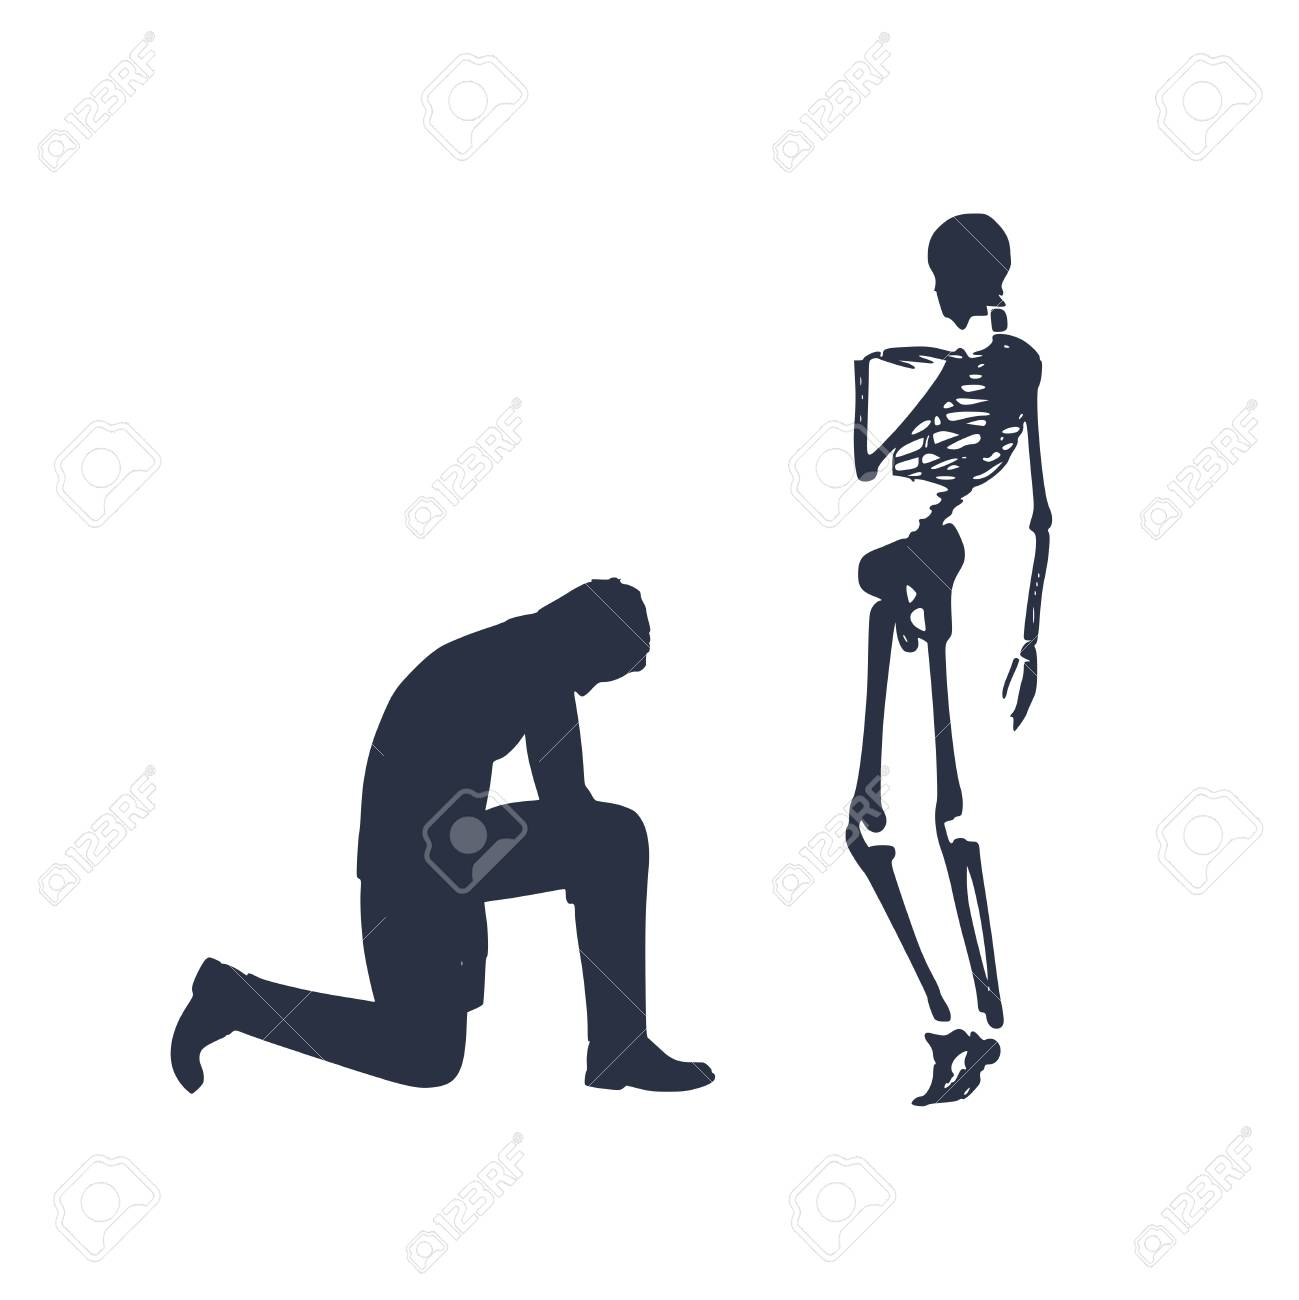 505b477a6 Silhouette of man in prayer pose. Man asking skeleton to forgive him. Stock  Vector